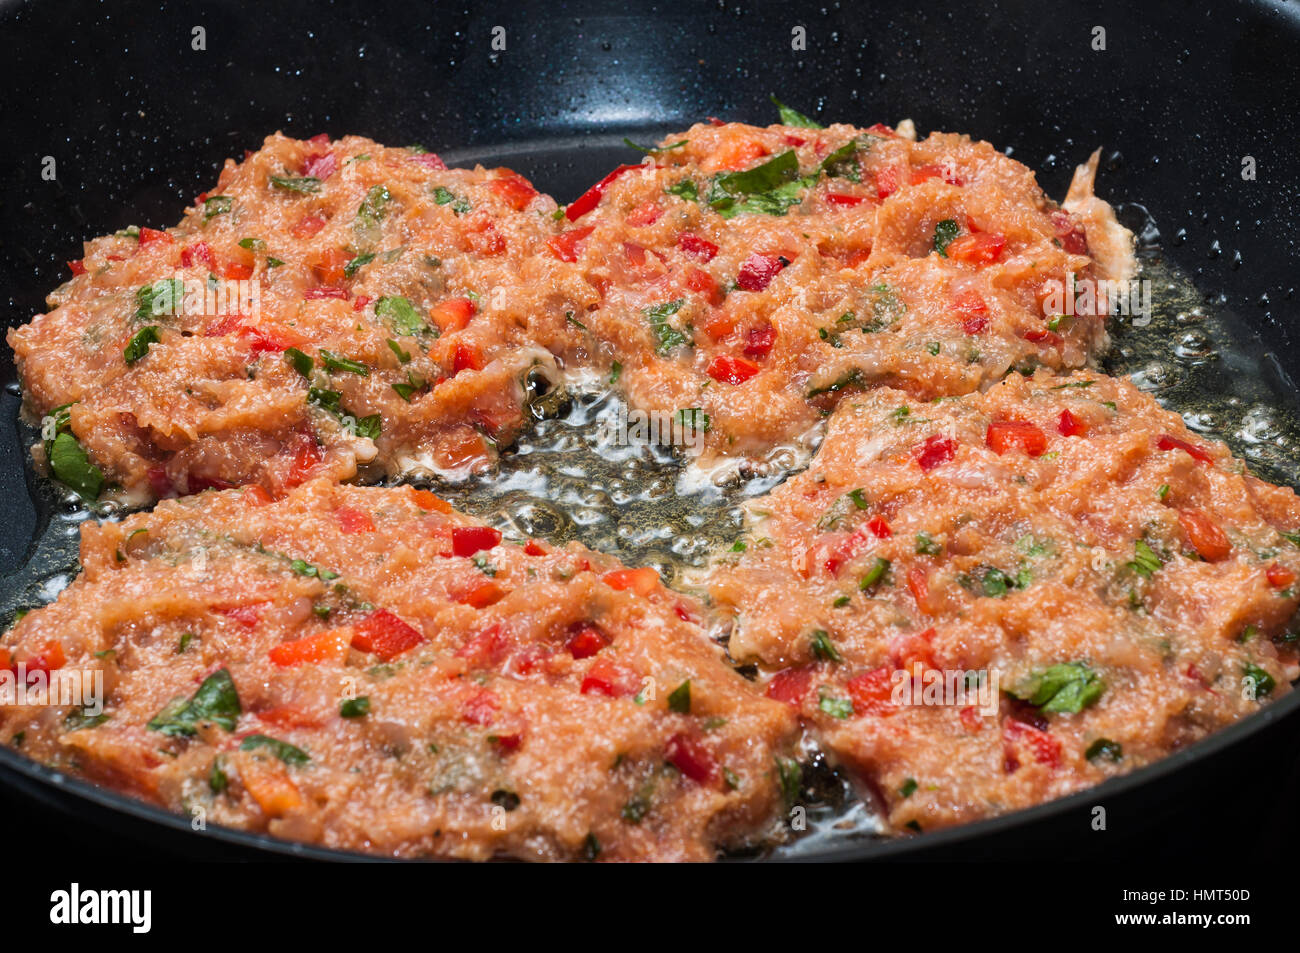 cooking home made meatballs with vegetables in pan on ceramic stove - Stock Image